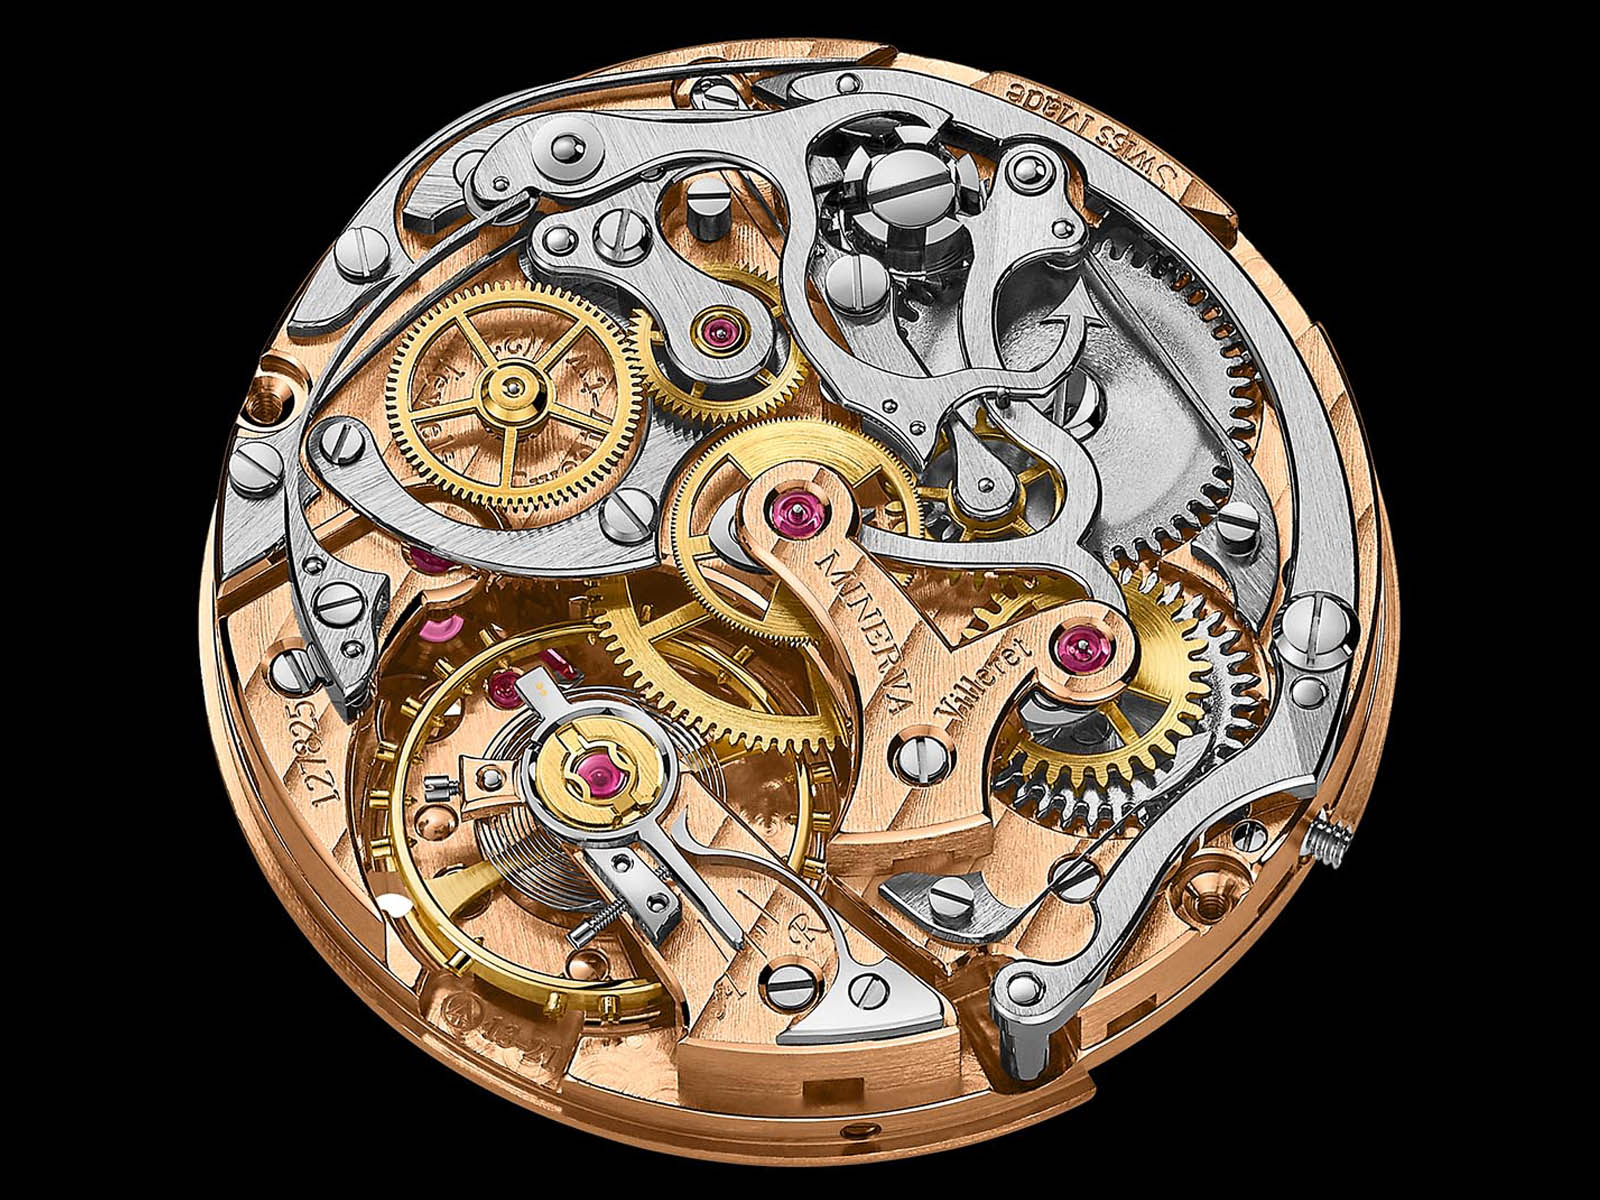 126095-montblanc-heritage-manufacture-pulsograph-limited-edition-rose-gold-5.jpg